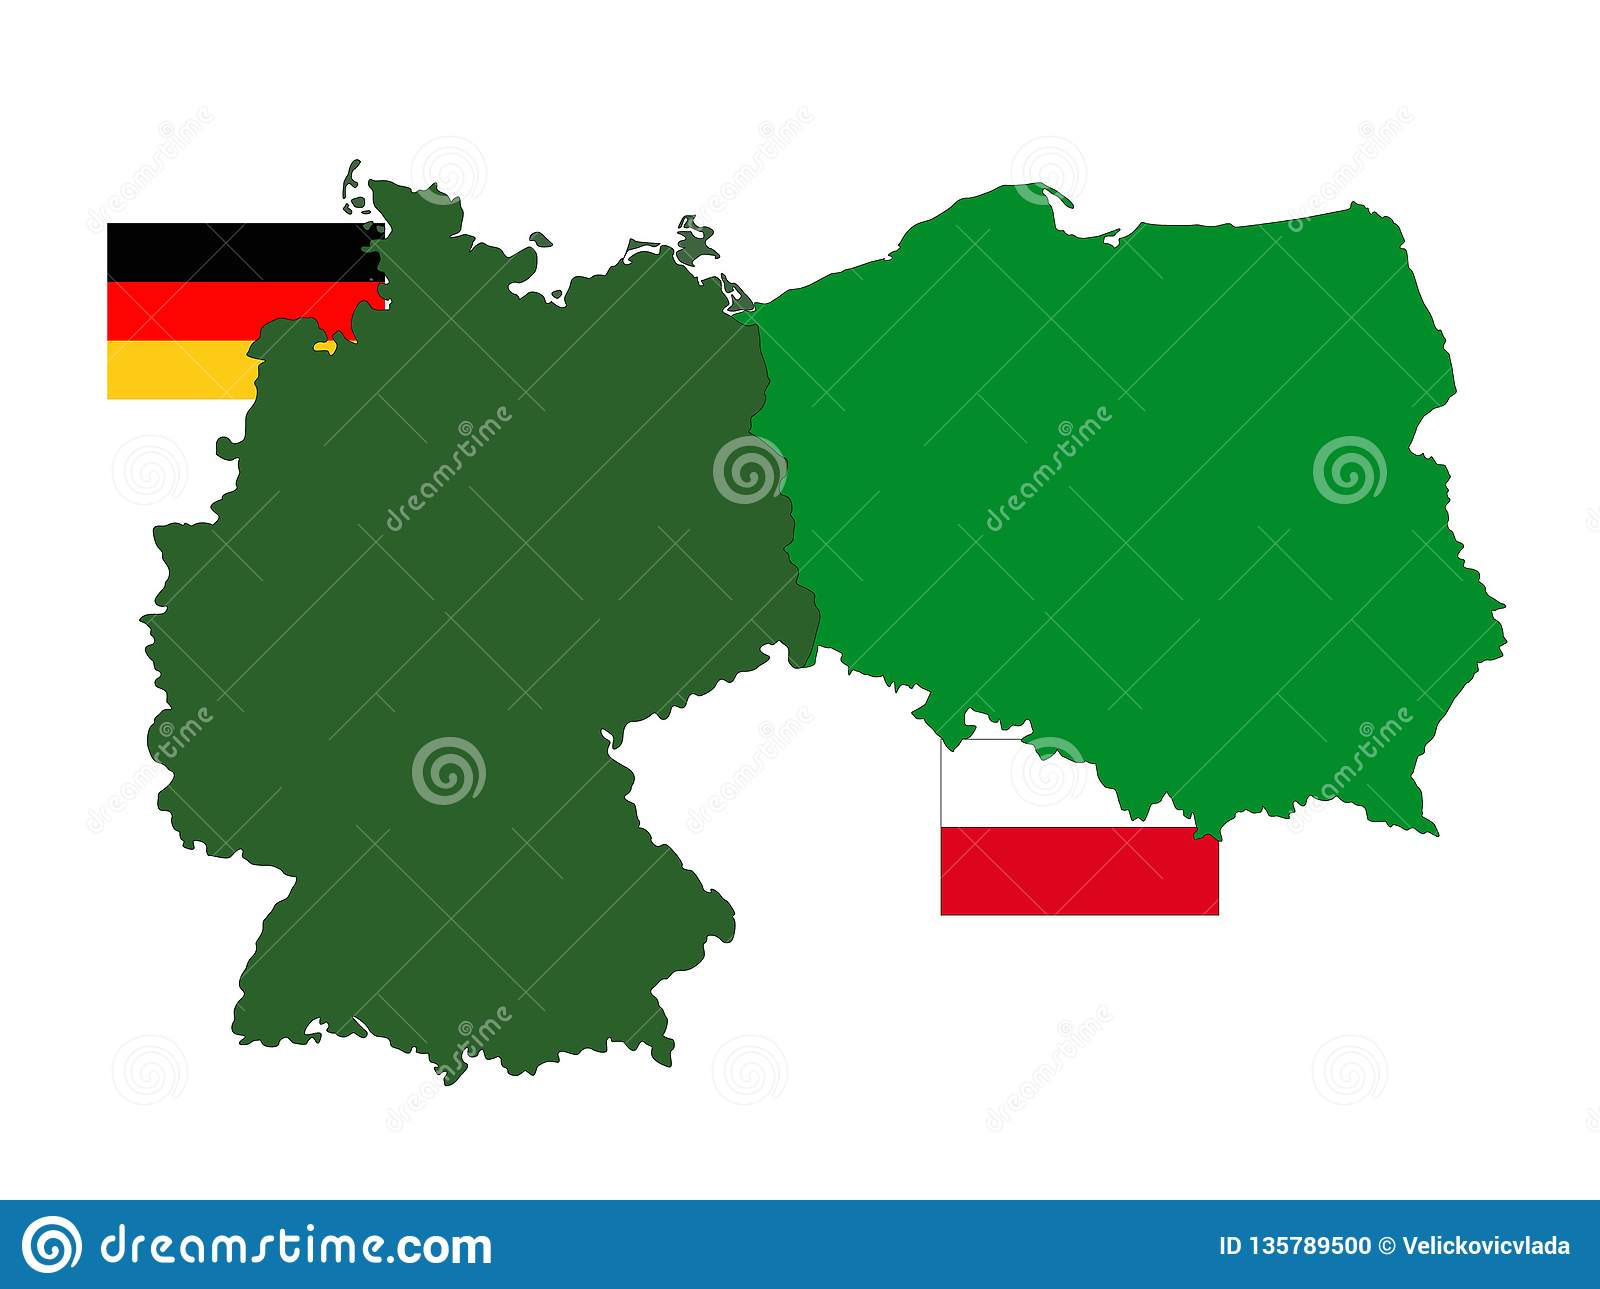 Germany And Poland Maps And Flags - Europe Countries Stock Vector ...